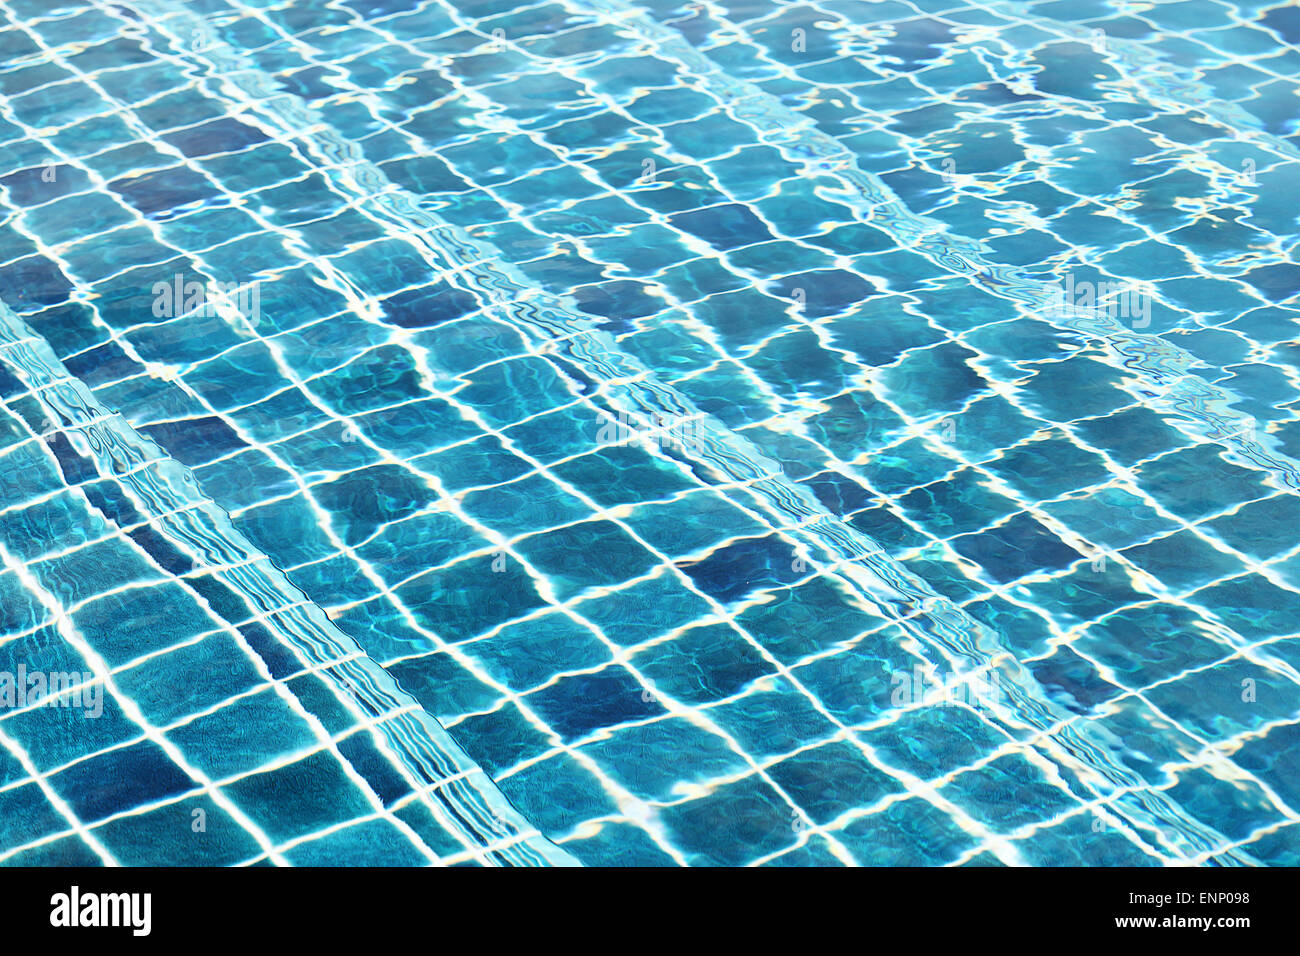 Blue ceramic wall tiles and details of surface on swimming pool ...